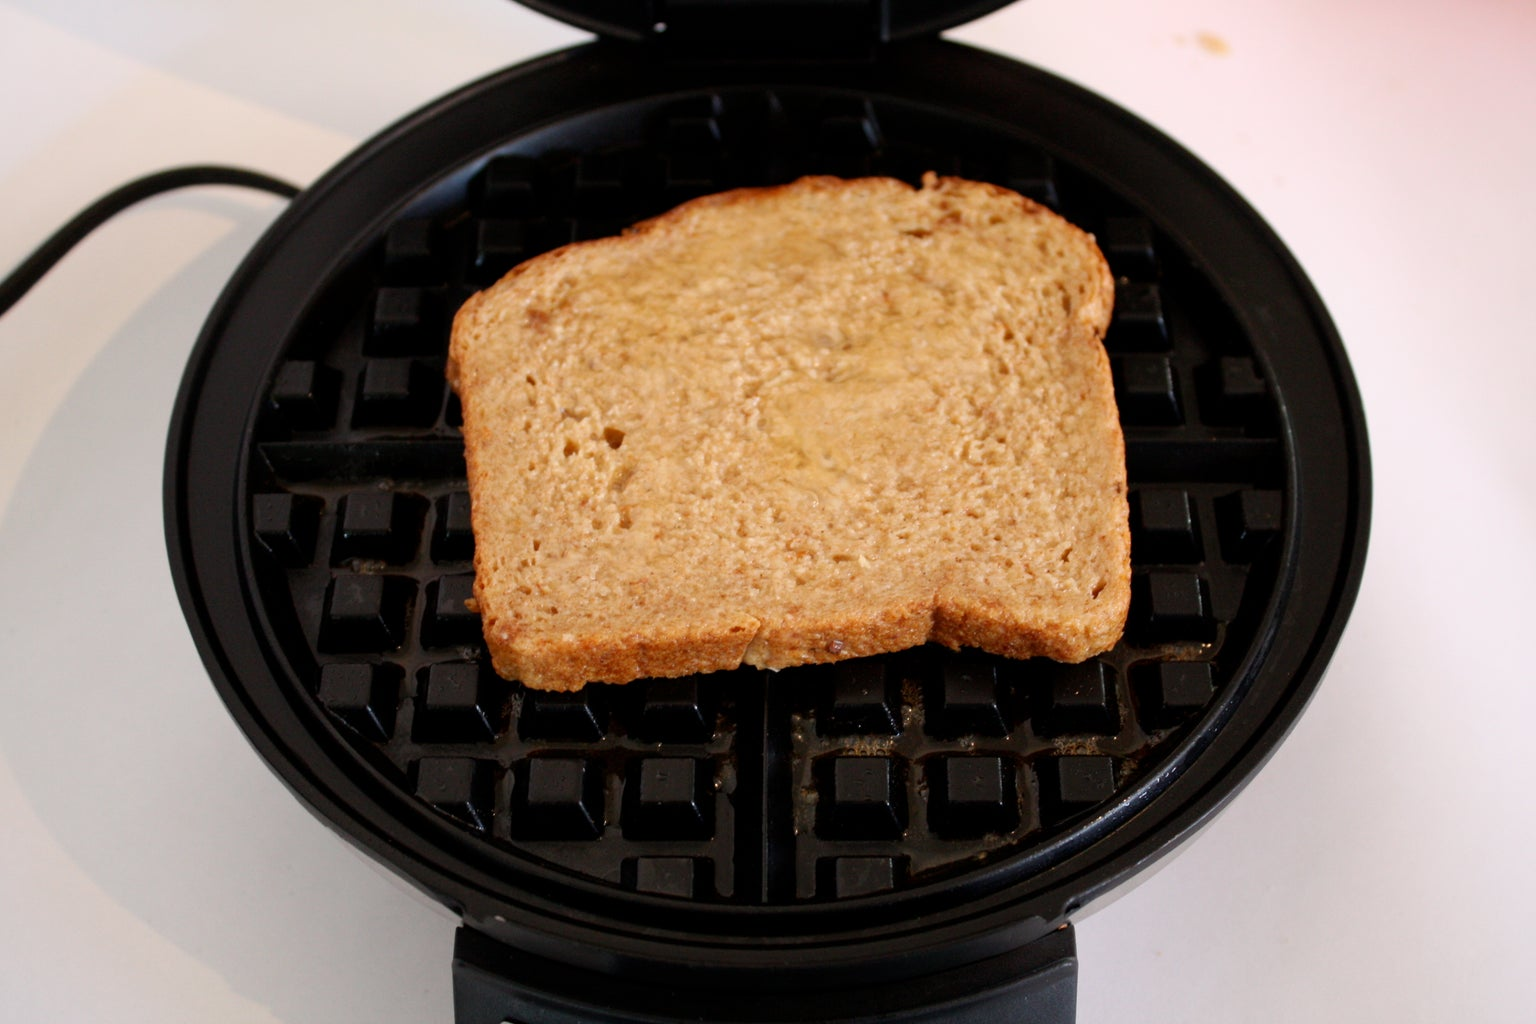 Warm Up Your Waffle Maker